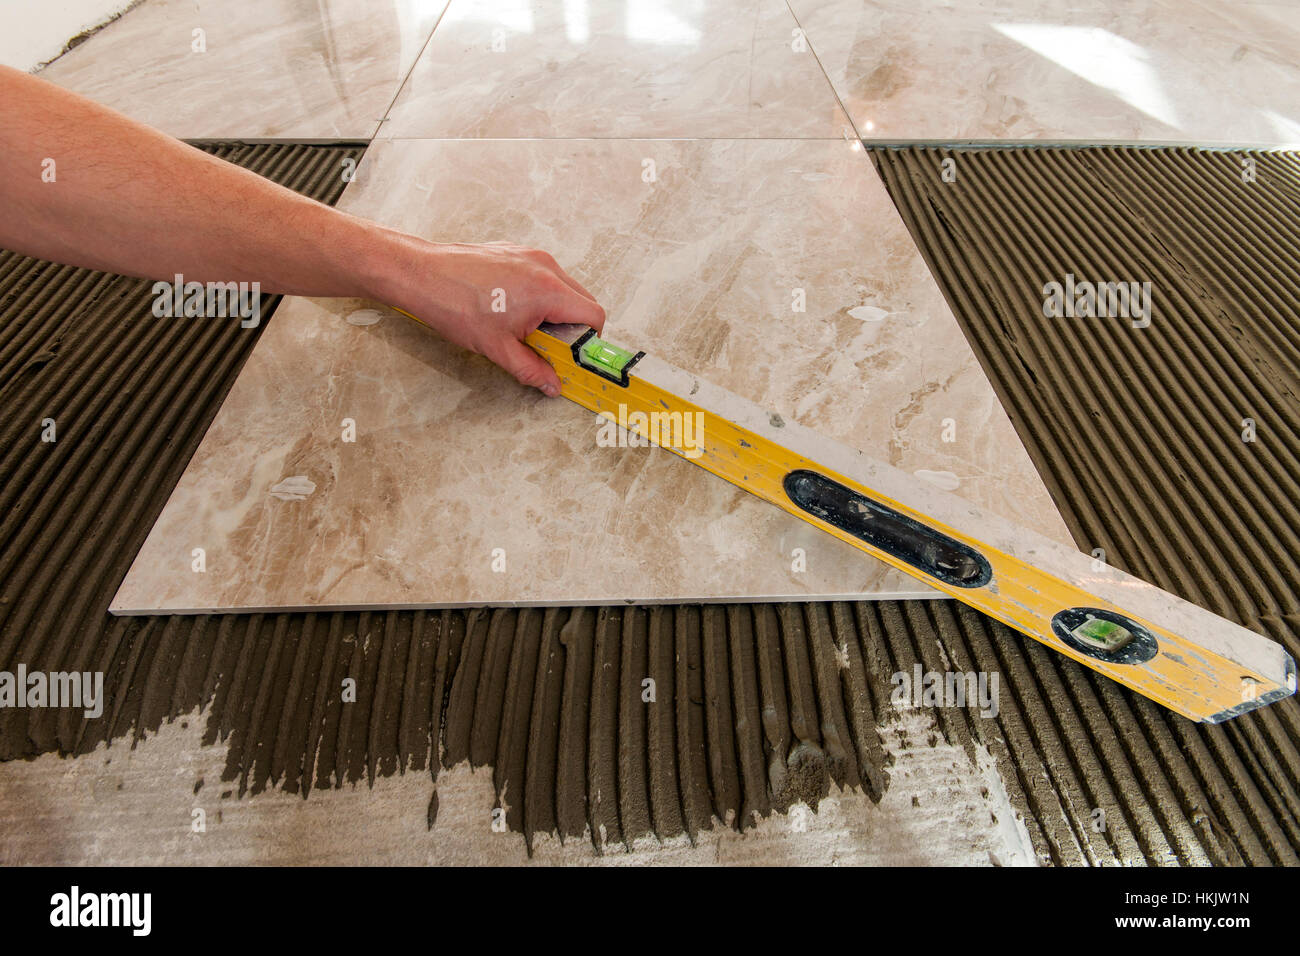 Ceramic tiles and tools for tiler floor tiles installation home ceramic tiles and tools for tiler floor tiles installation home improvement renovation ceramic tile floor adhesive mortar level dailygadgetfo Image collections